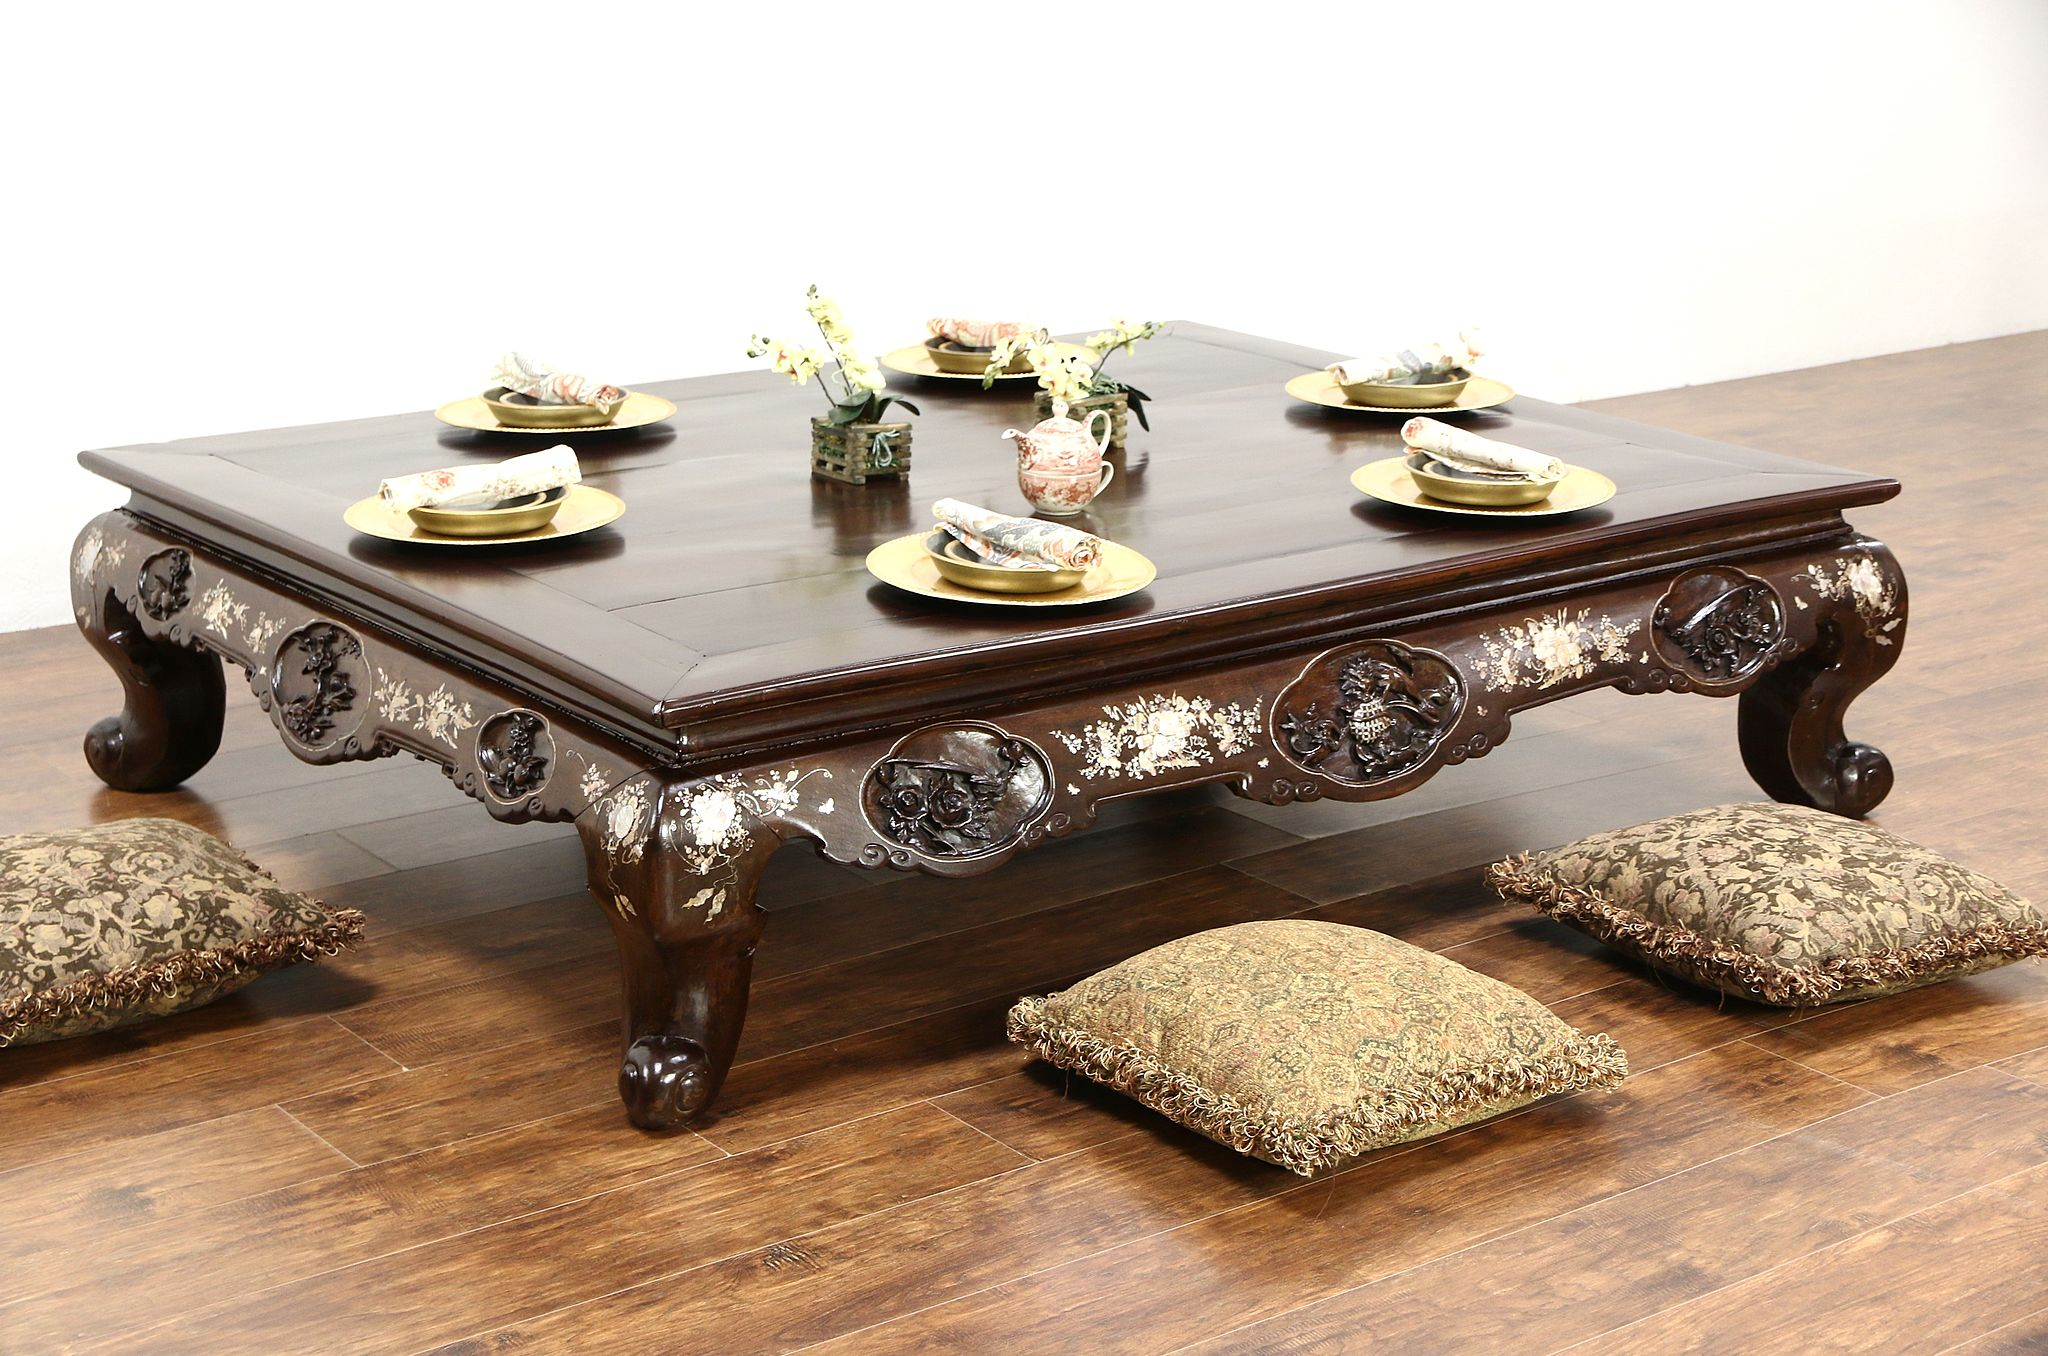 Sensational Chinese Rosewood 1860 Antique Low Banquet Dining Or Coffee Table Pearl Inlay Andrewgaddart Wooden Chair Designs For Living Room Andrewgaddartcom